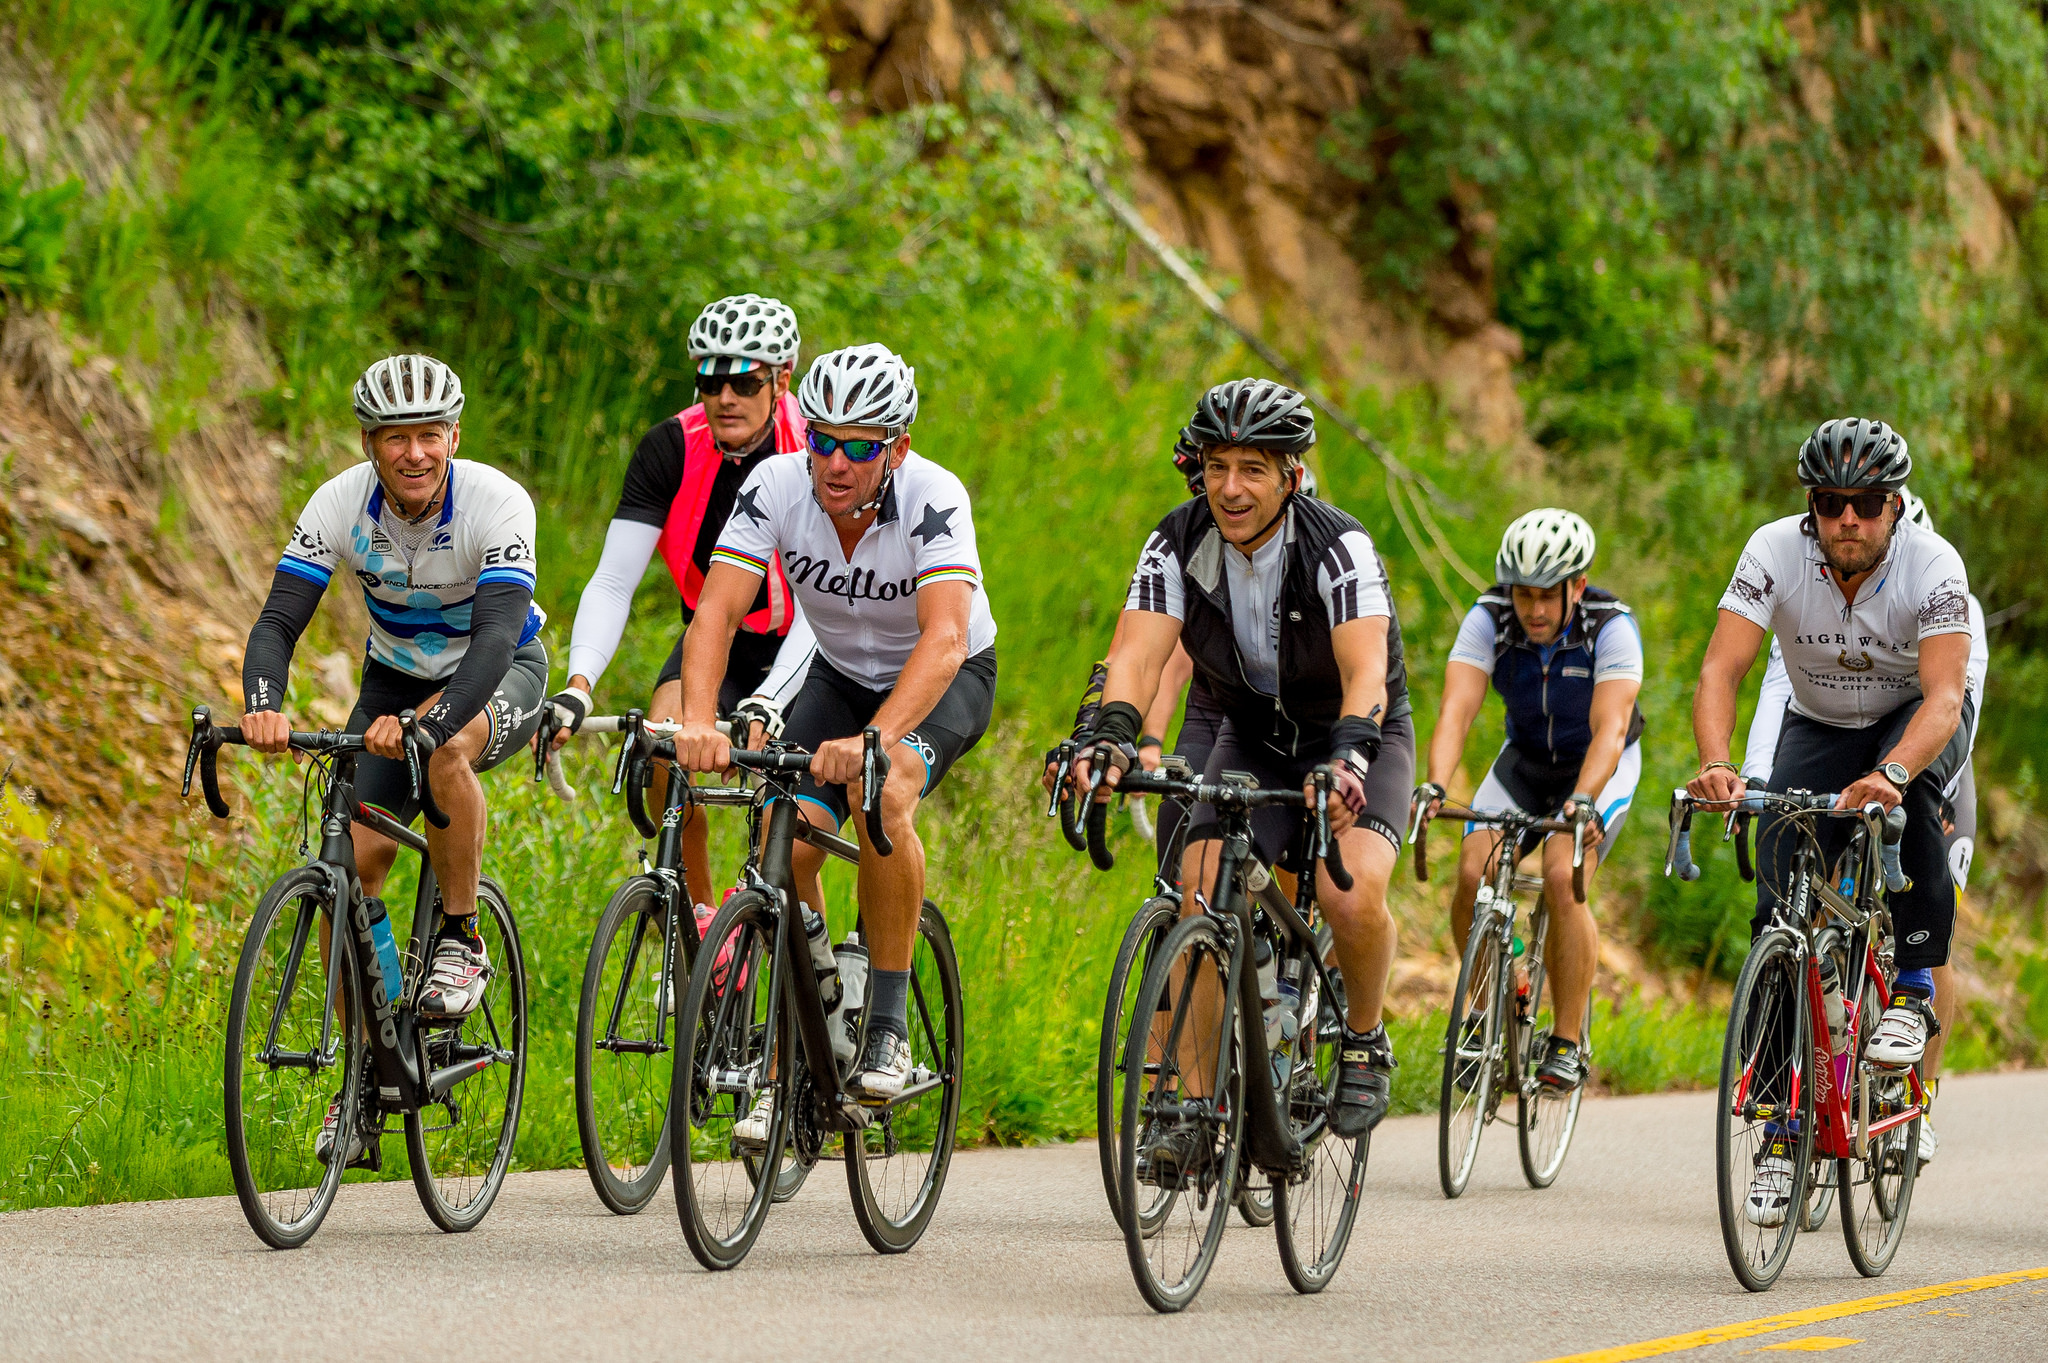 Lance Armstrong (in center wearing white shirt) during the Fortune Brainstorm Tech bike ride.